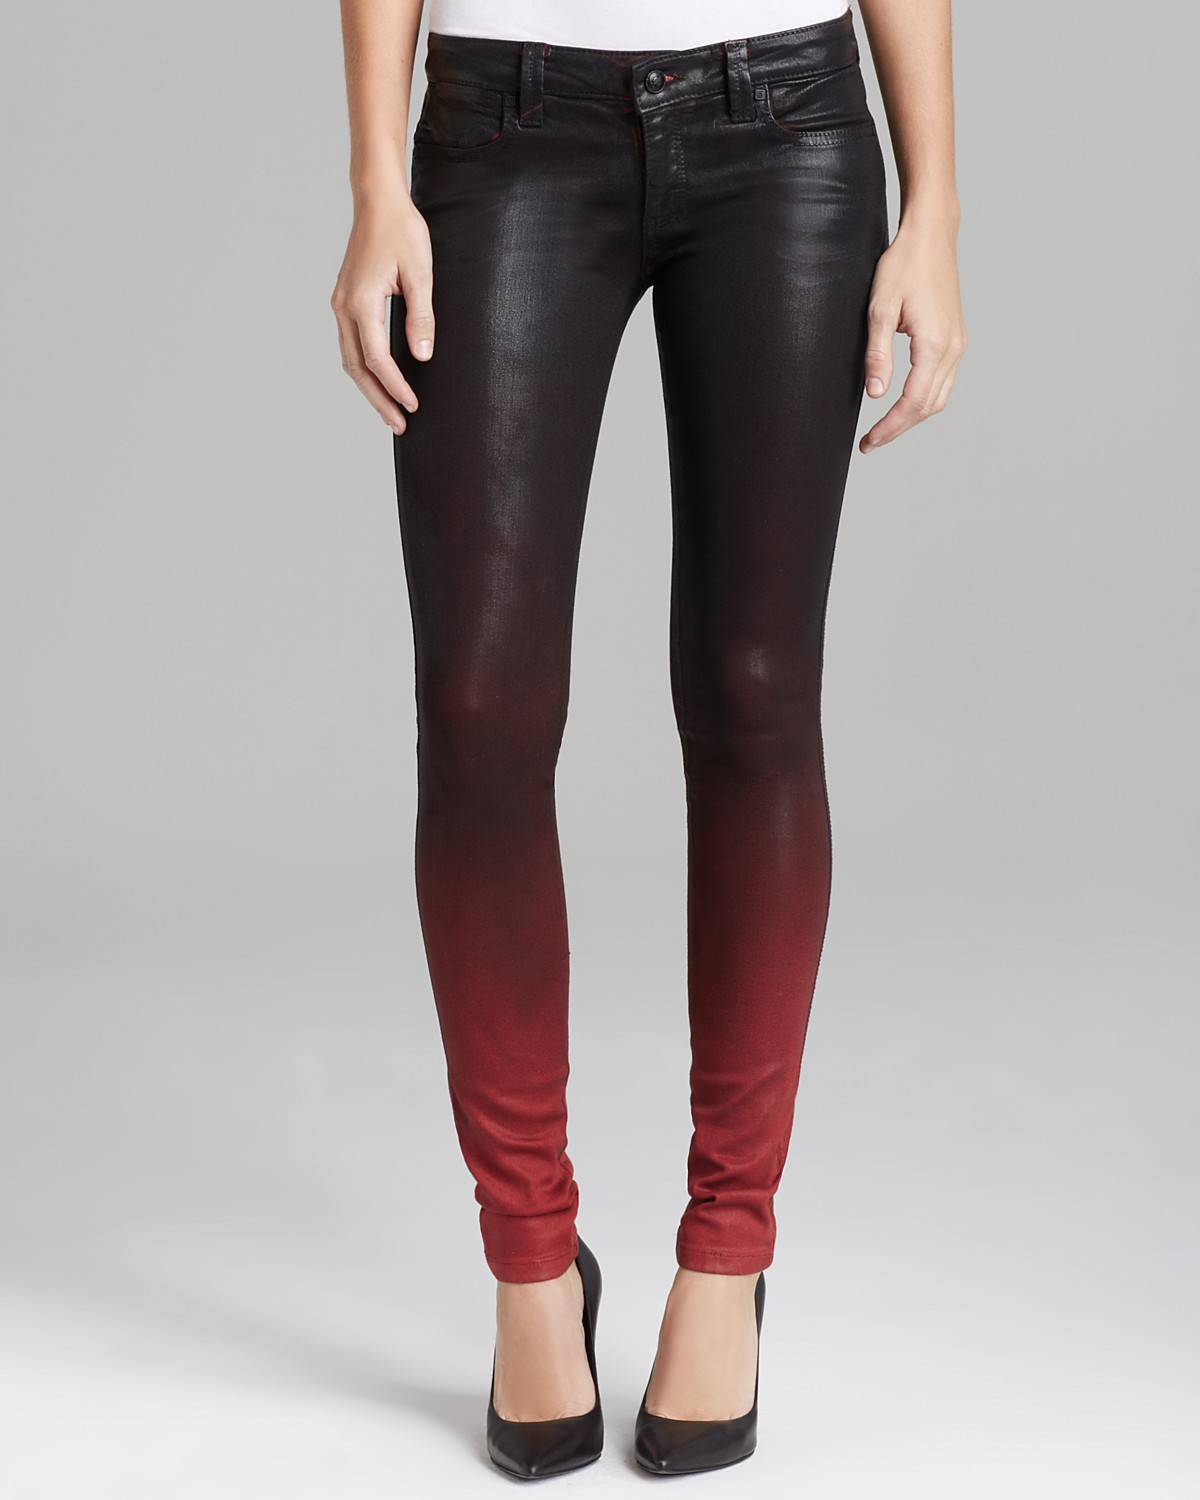 Frankie B Jeans - Coated My BFF Legging in Ombre Red | Bloomingdale's